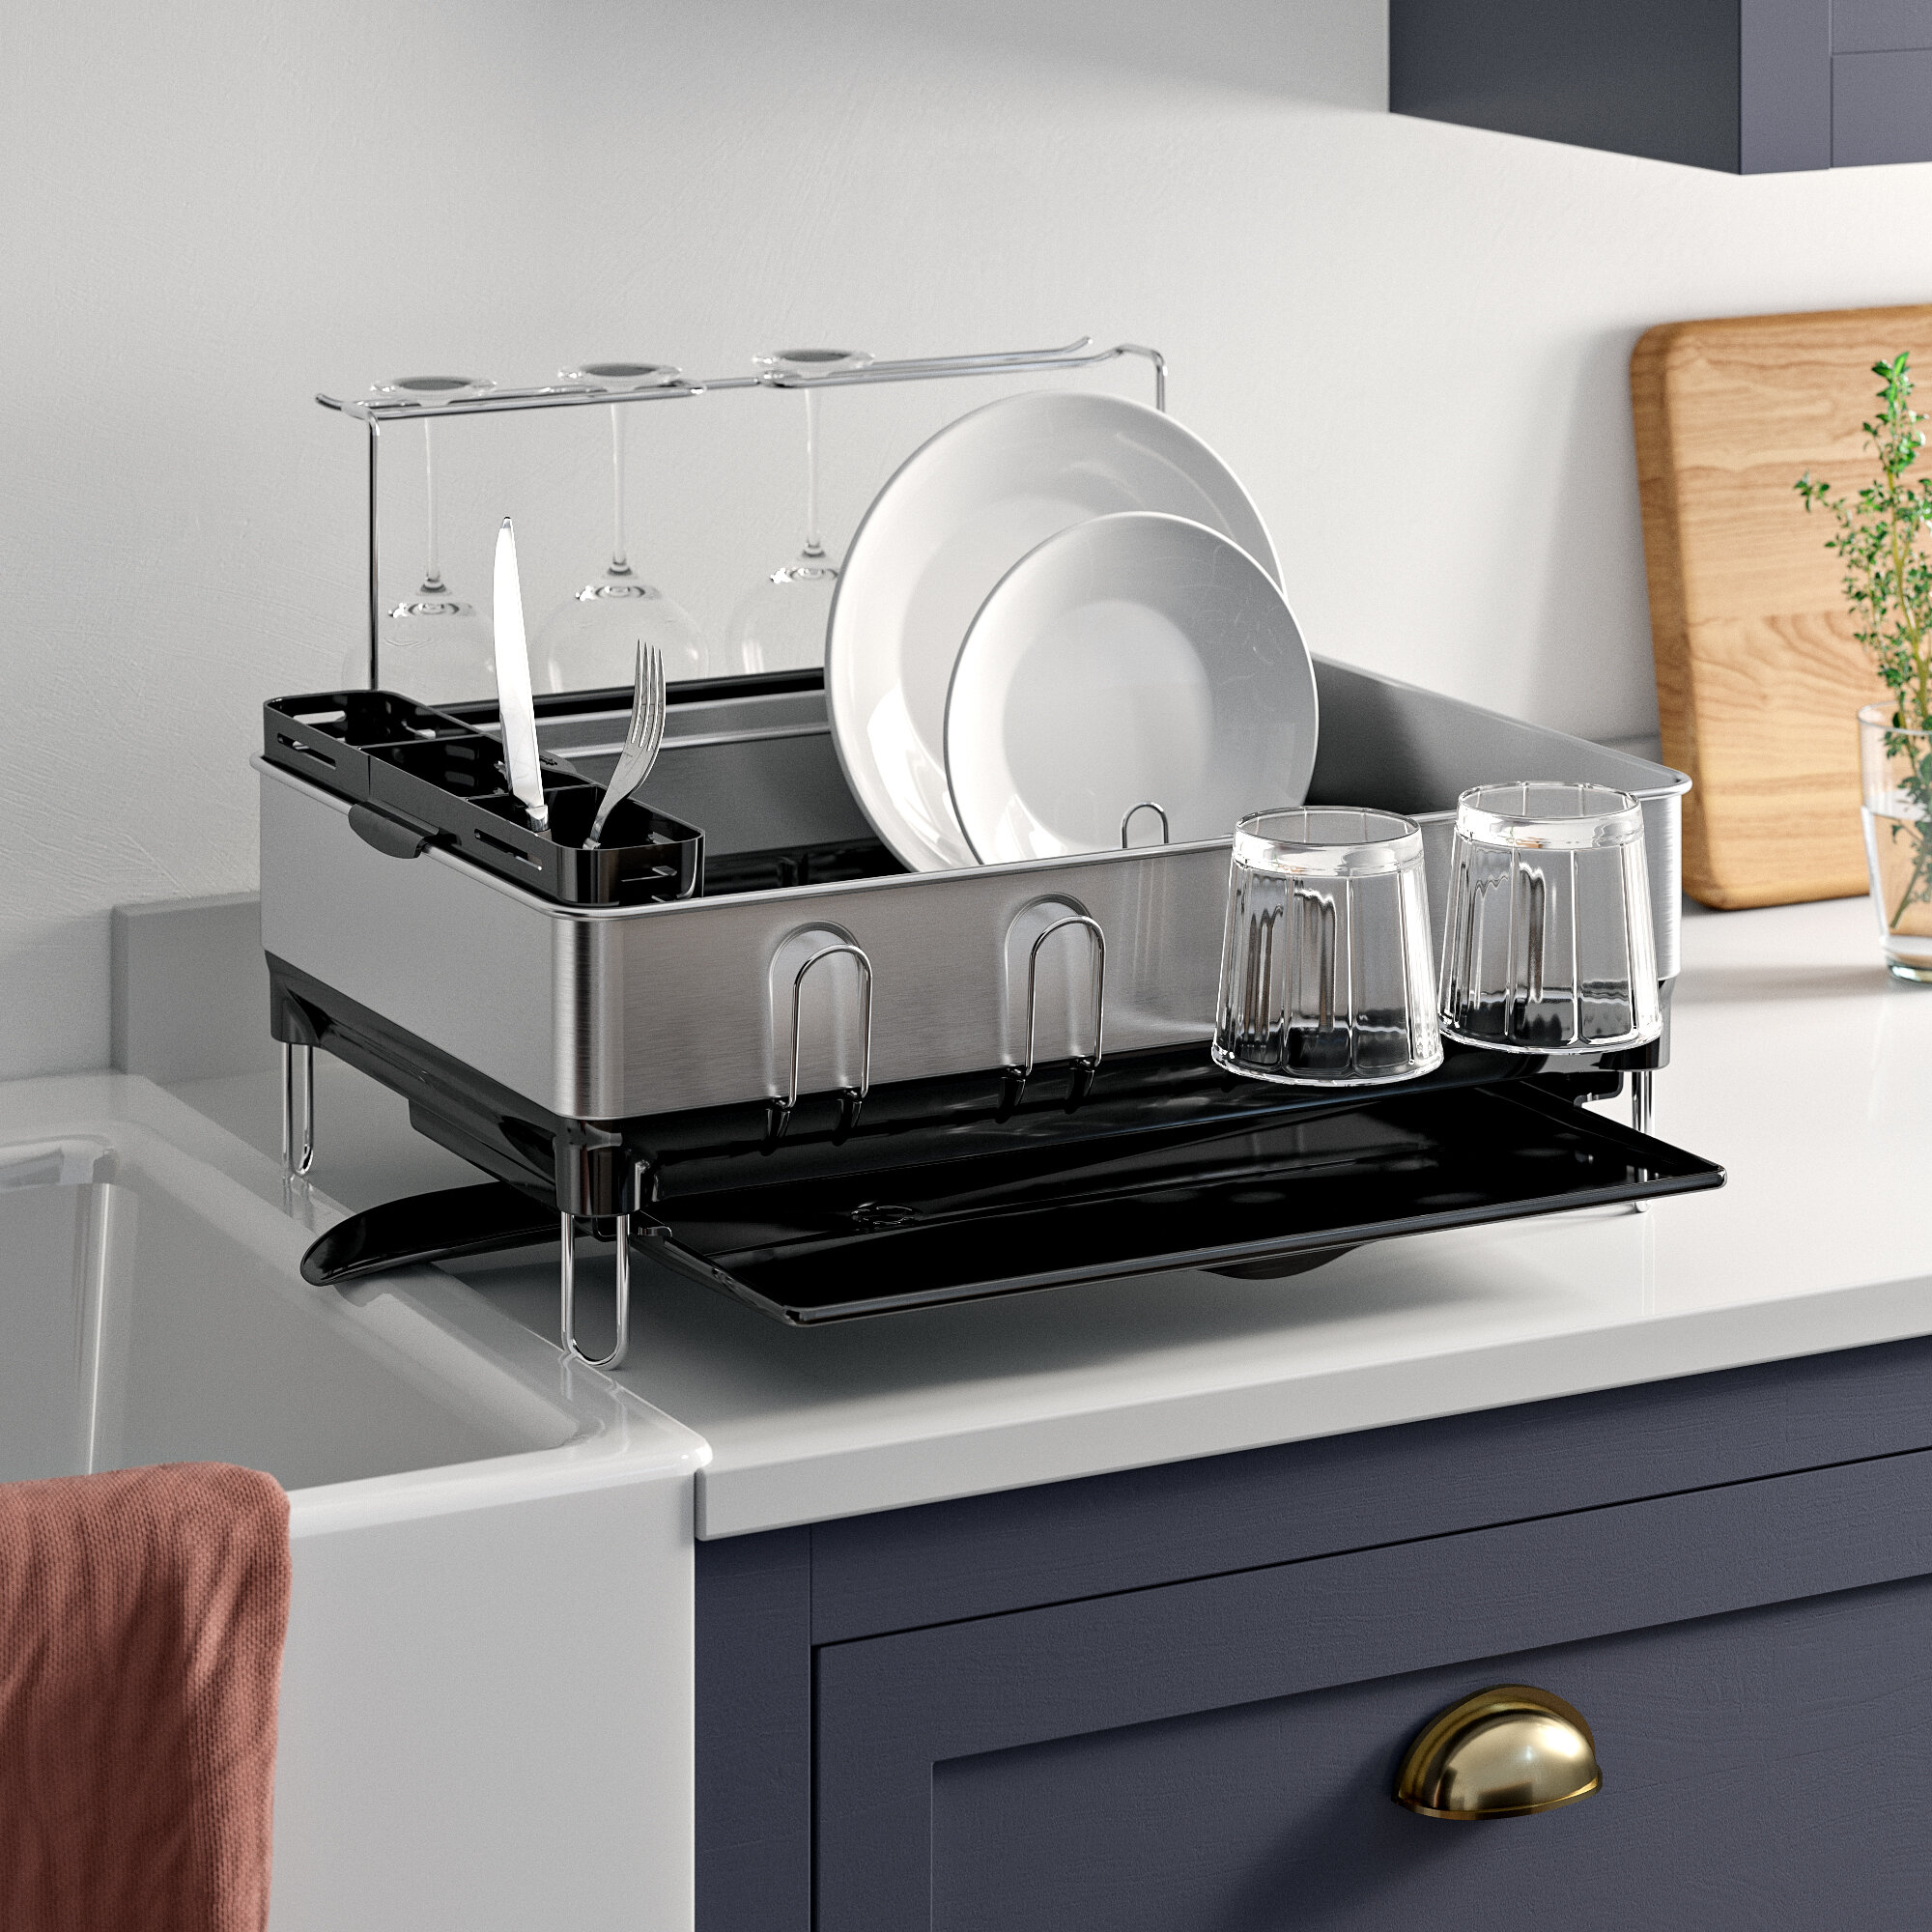 Stainless Steel Countertop Dish Rack